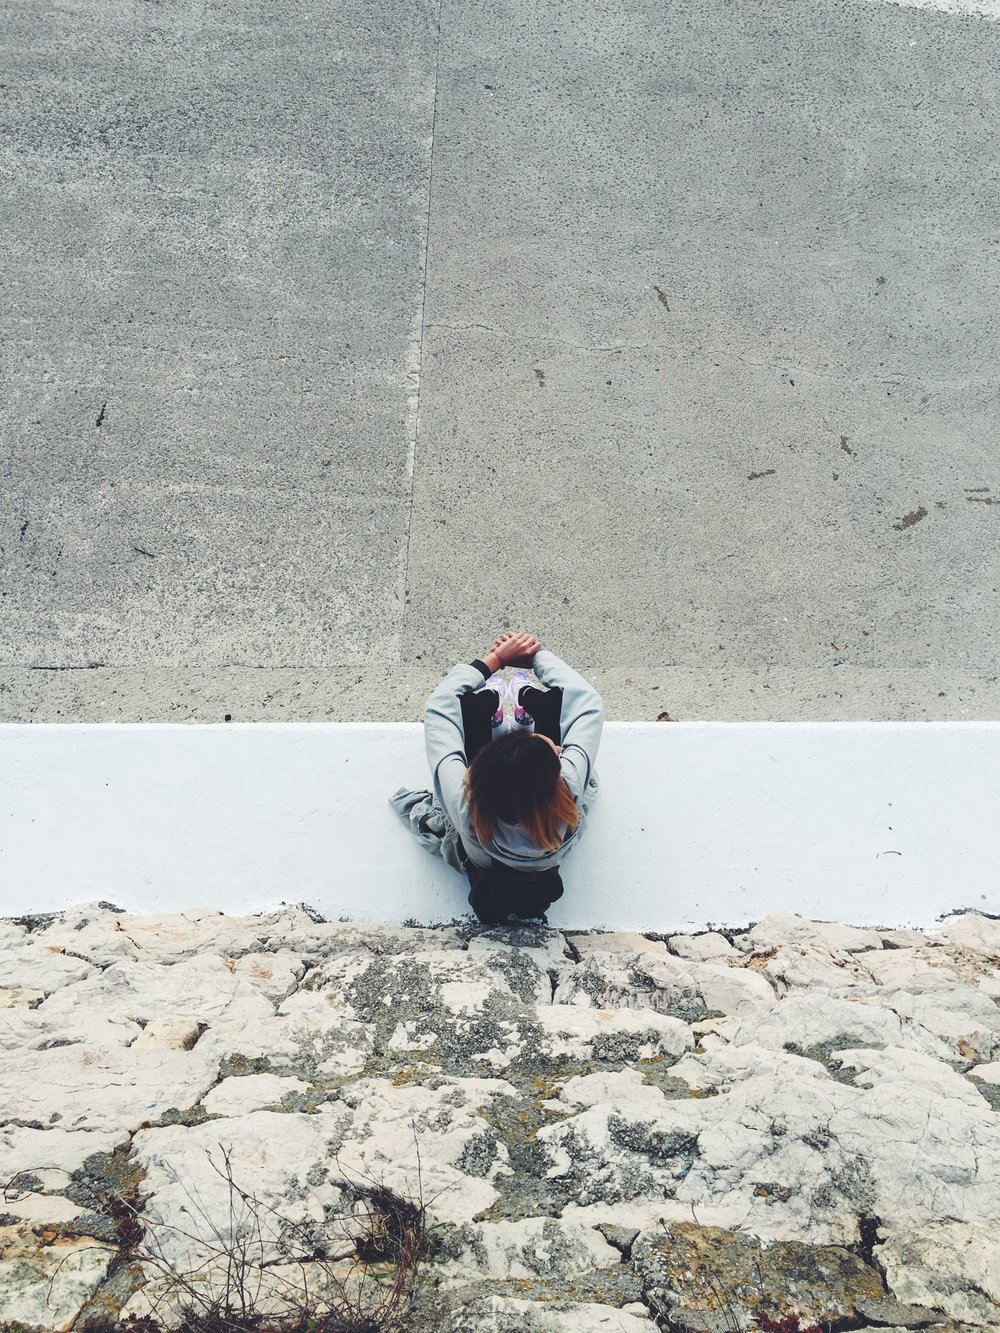 aerial shot of an anxious woman sitting on a ledge